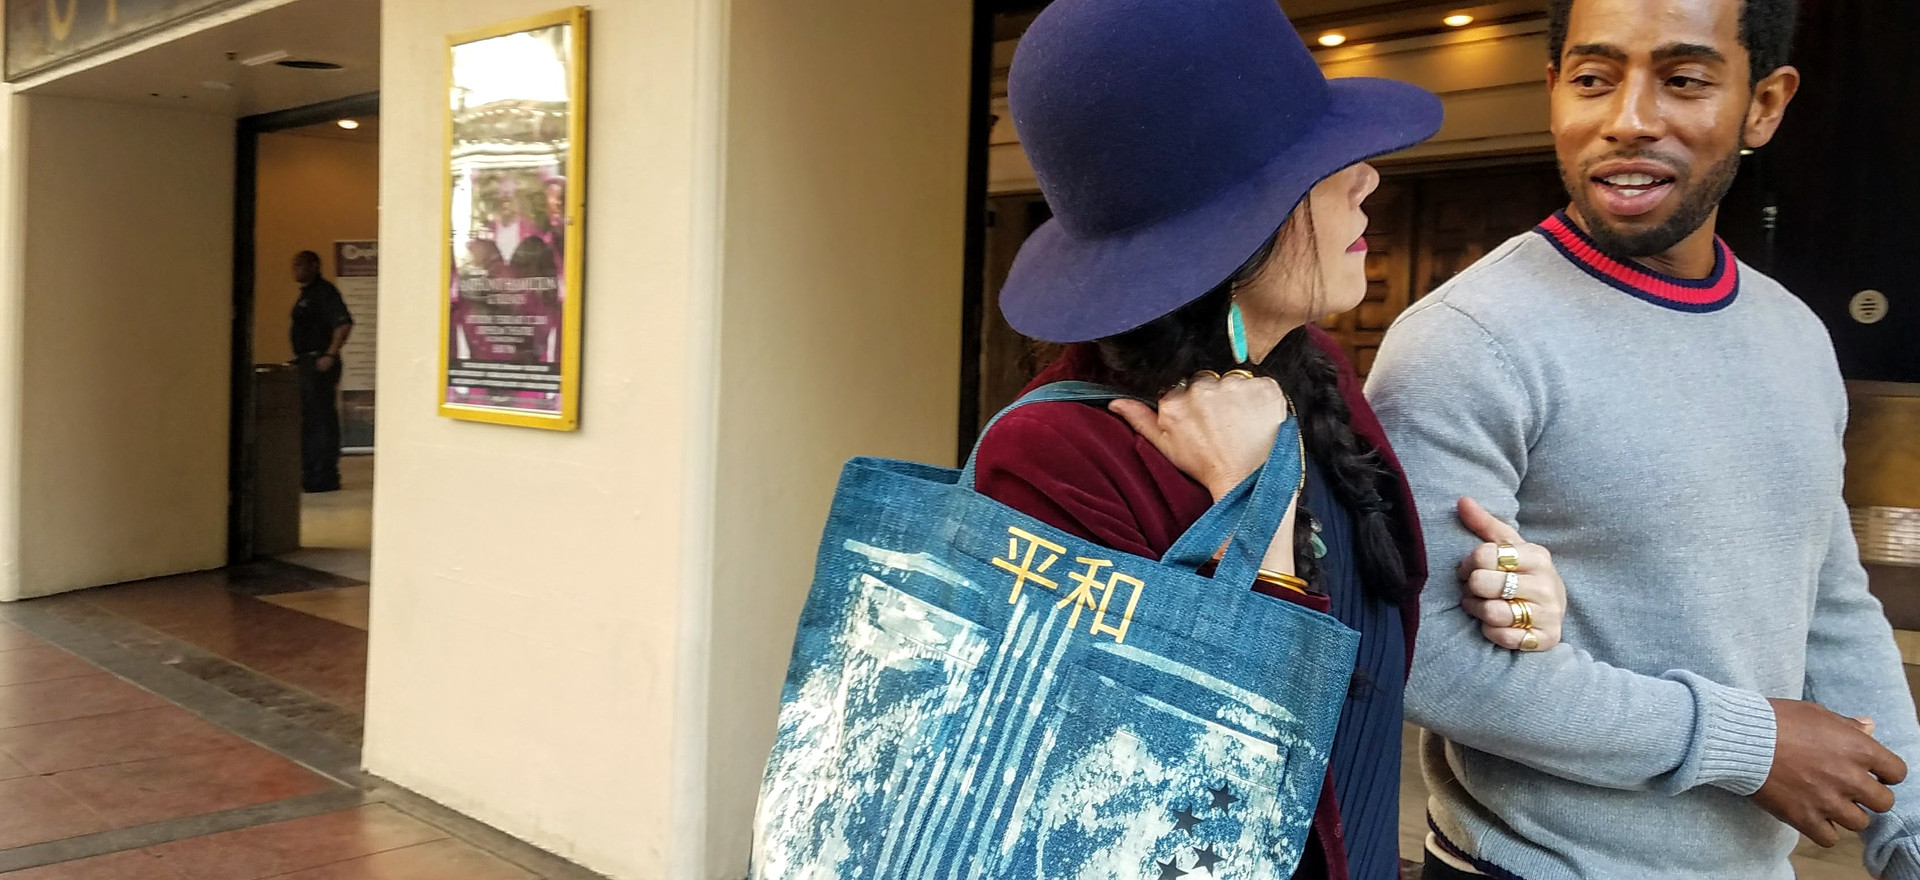 All Nations for PEACE, Denim Bag.